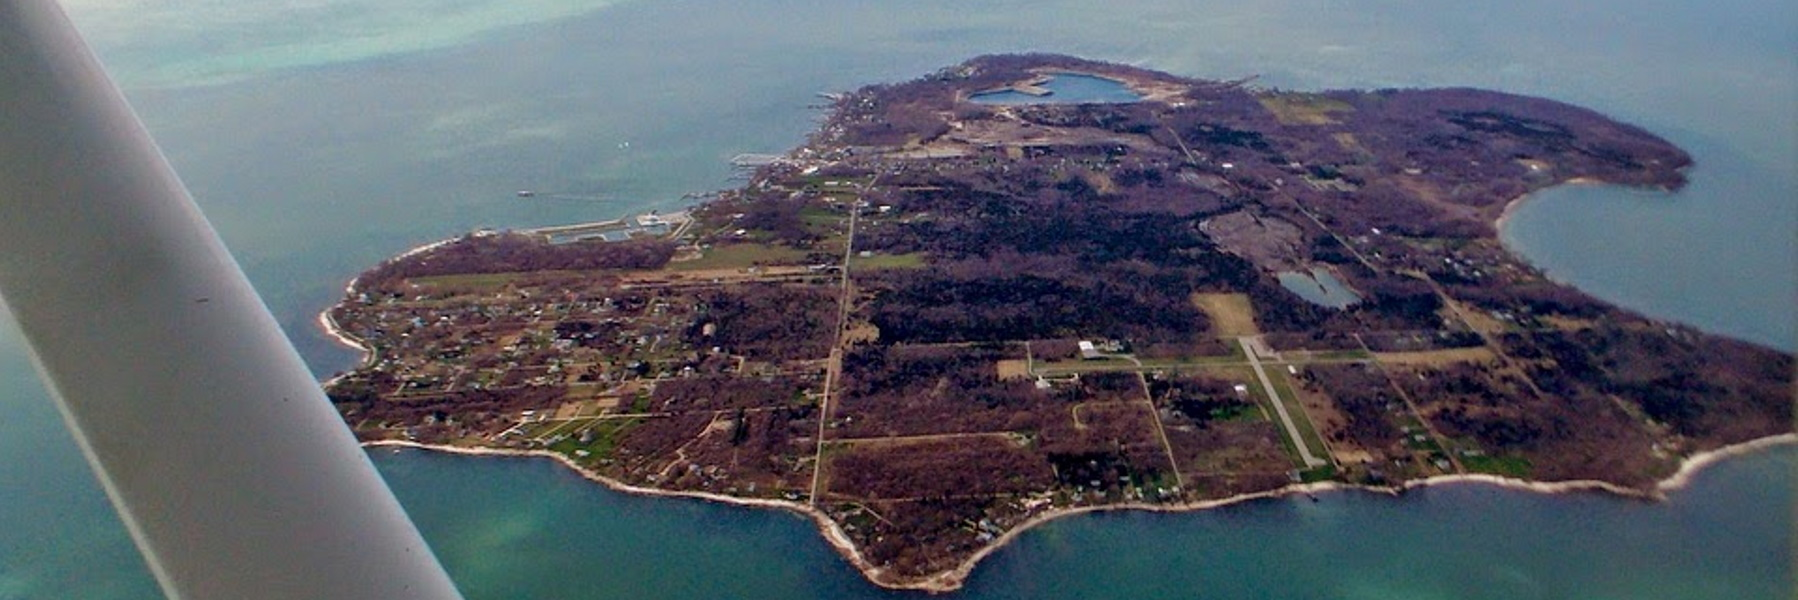 Kelleys Island aerial photo